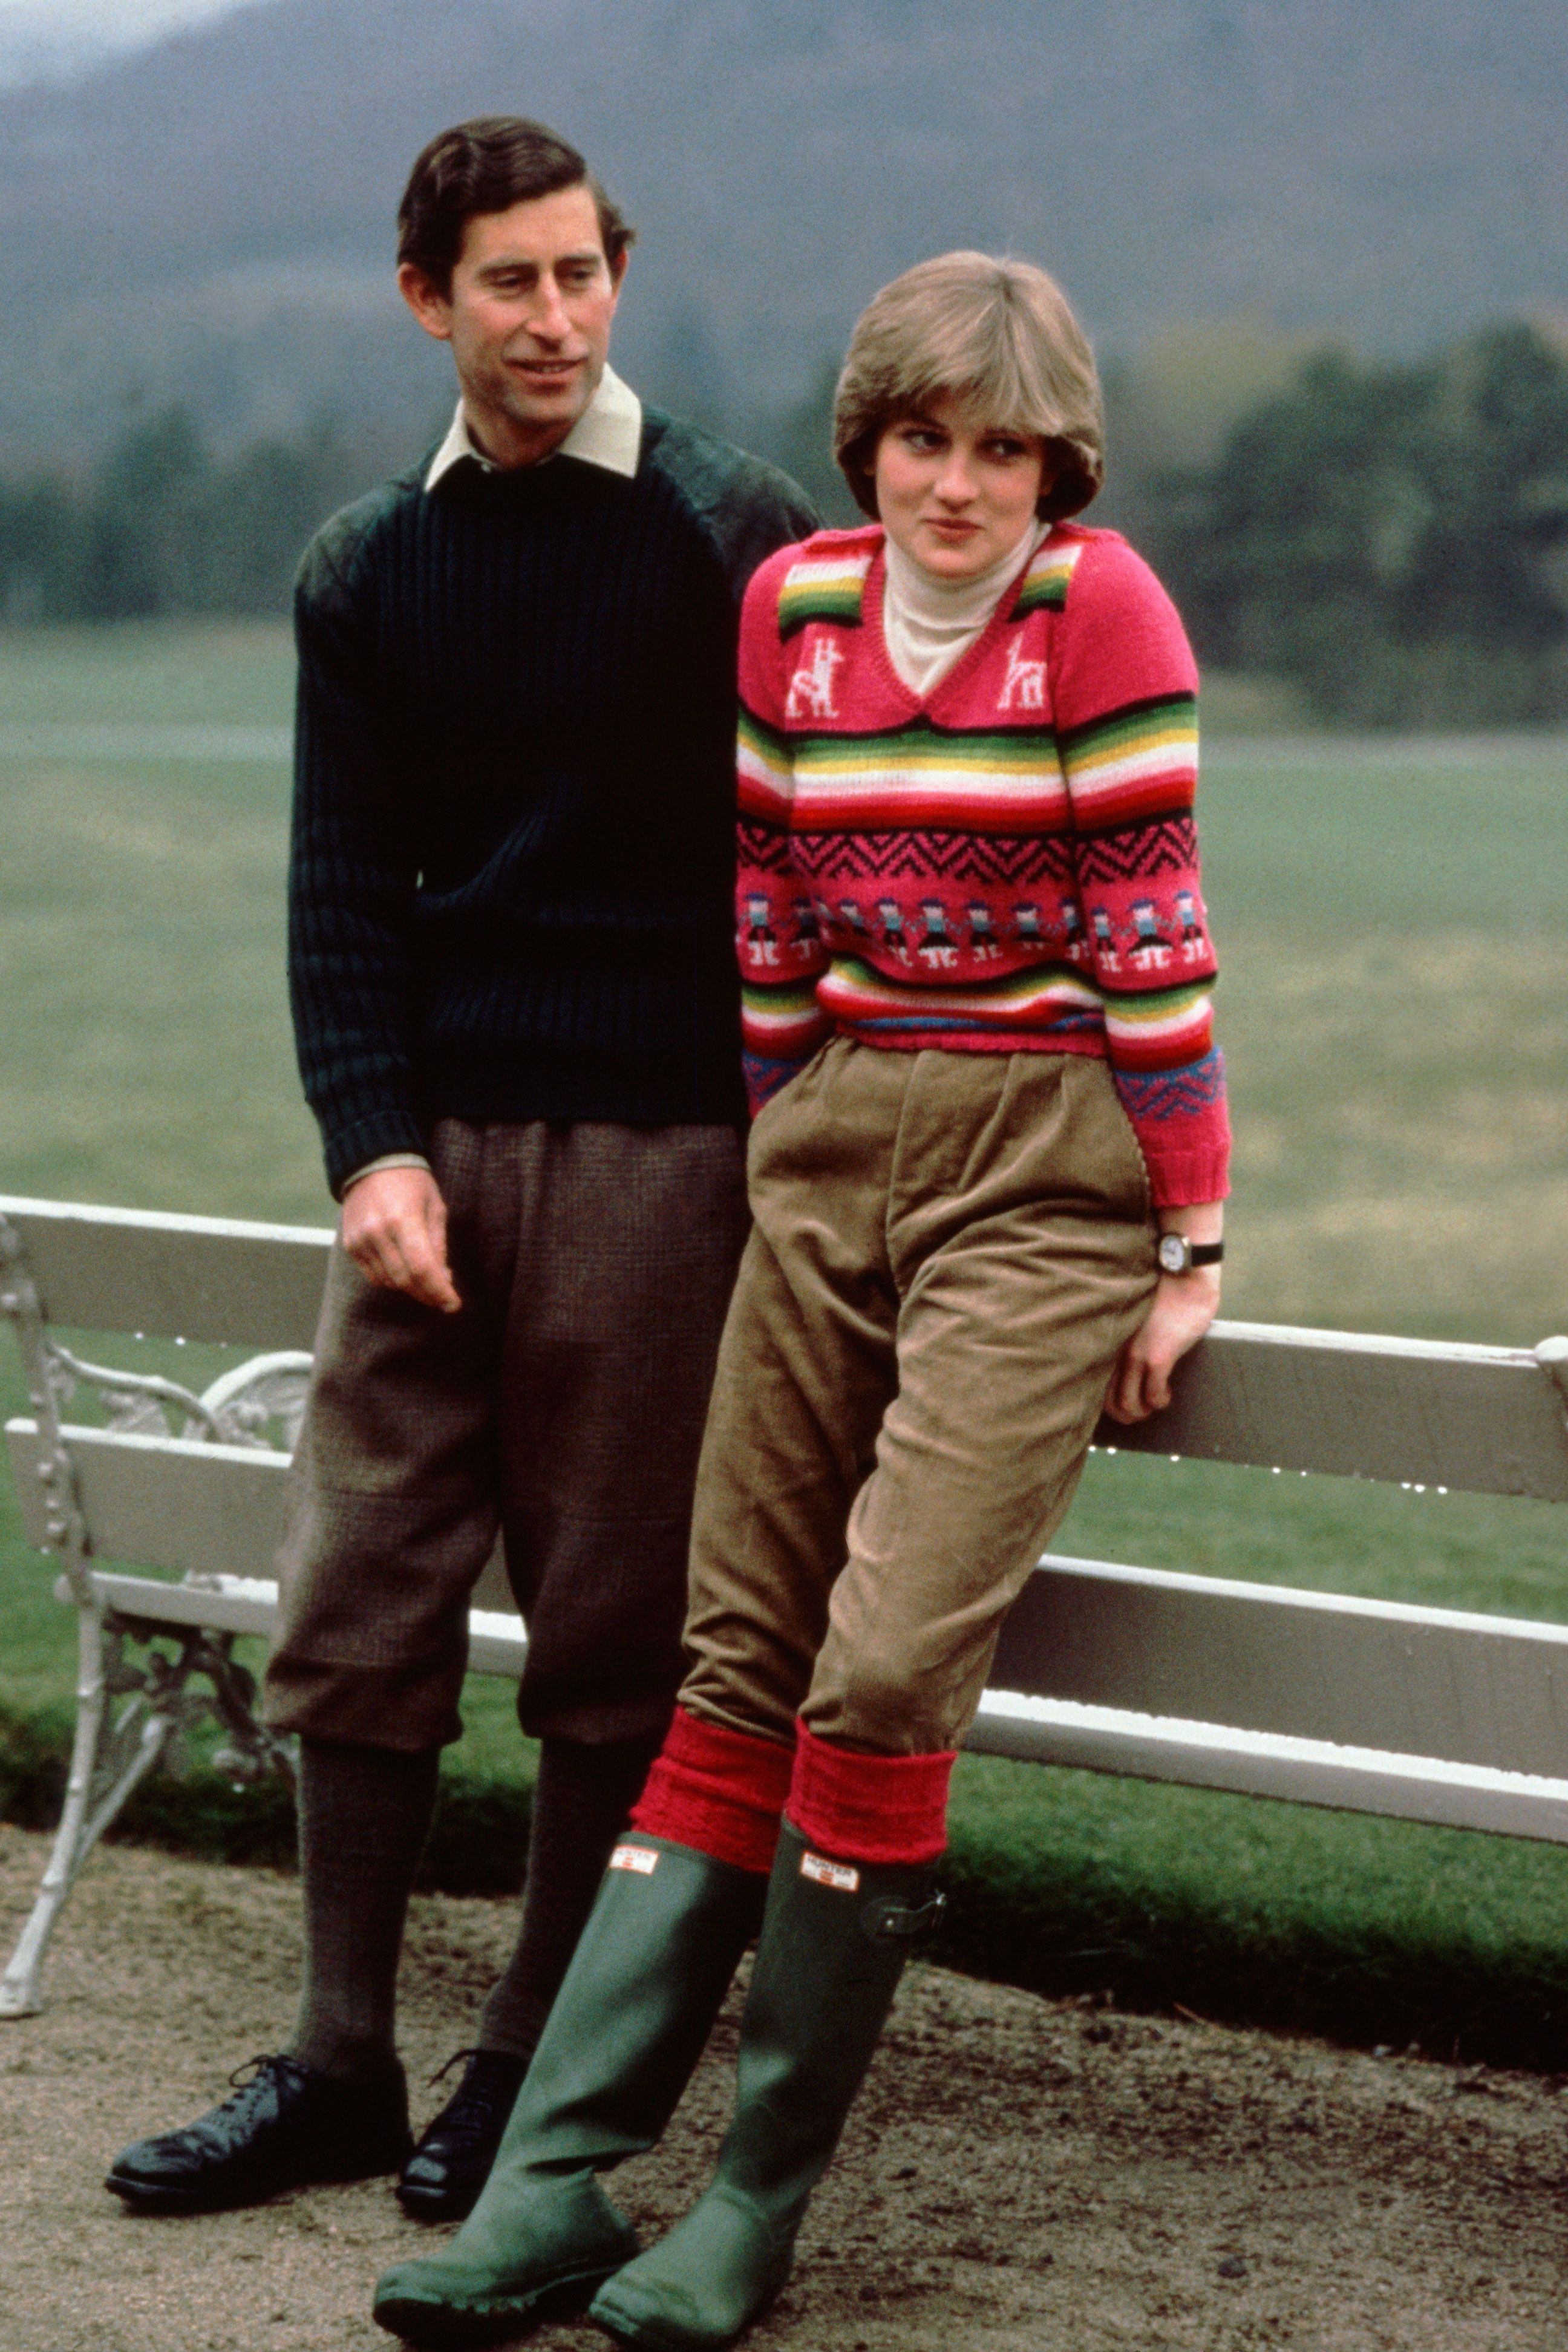 <p>No one wears wellies like Princess Diworewellies. Although not one of her most famouslooks, this outfit from before her weddinginspired women across the world to haul out their rainboots.</p>